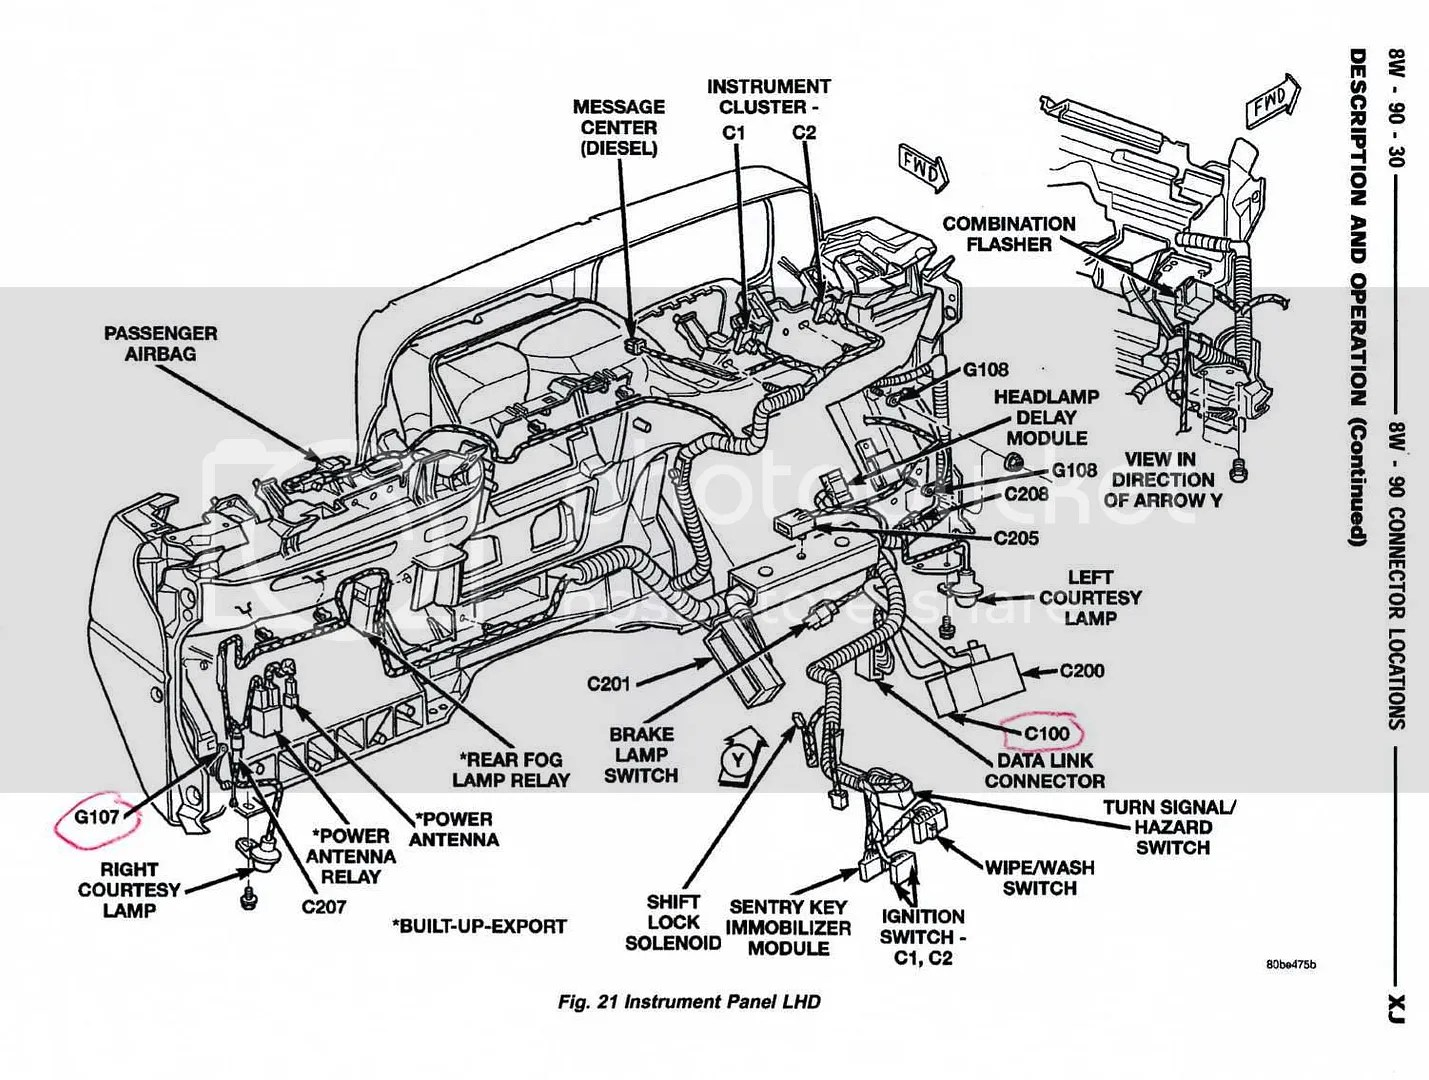 hight resolution of 2002 jeep wrangler engine diagram wiring diagram page 2002 jeep liberty 3 7l engine diagram 2002 jeep engine diagram